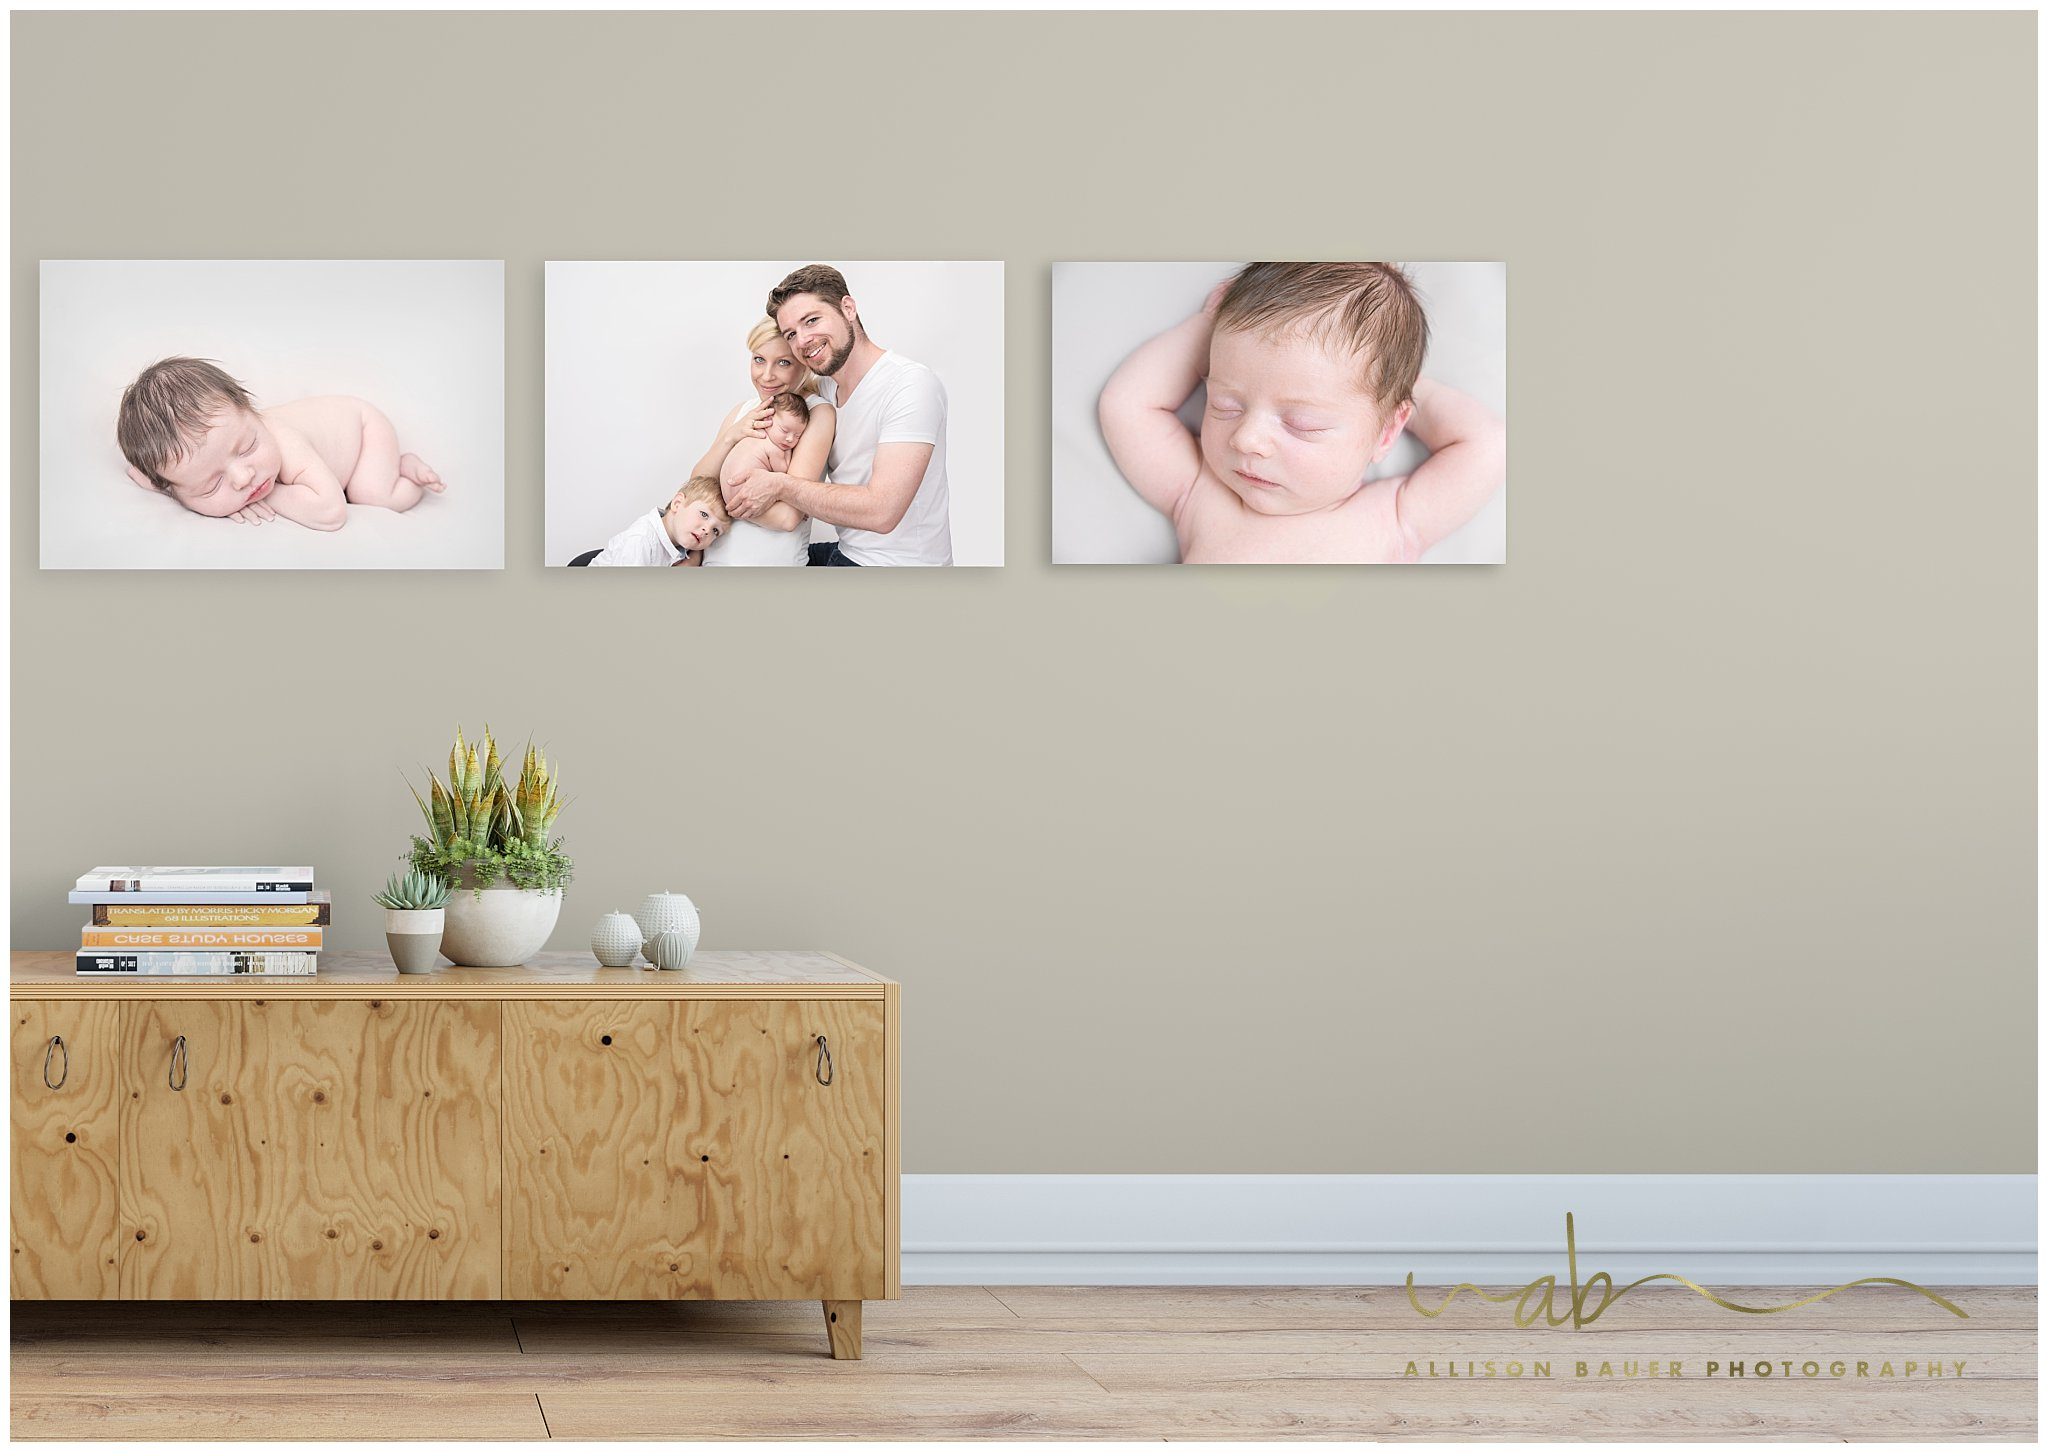 Allison-Bauer-Photography-Wandbilder-Babyfotos